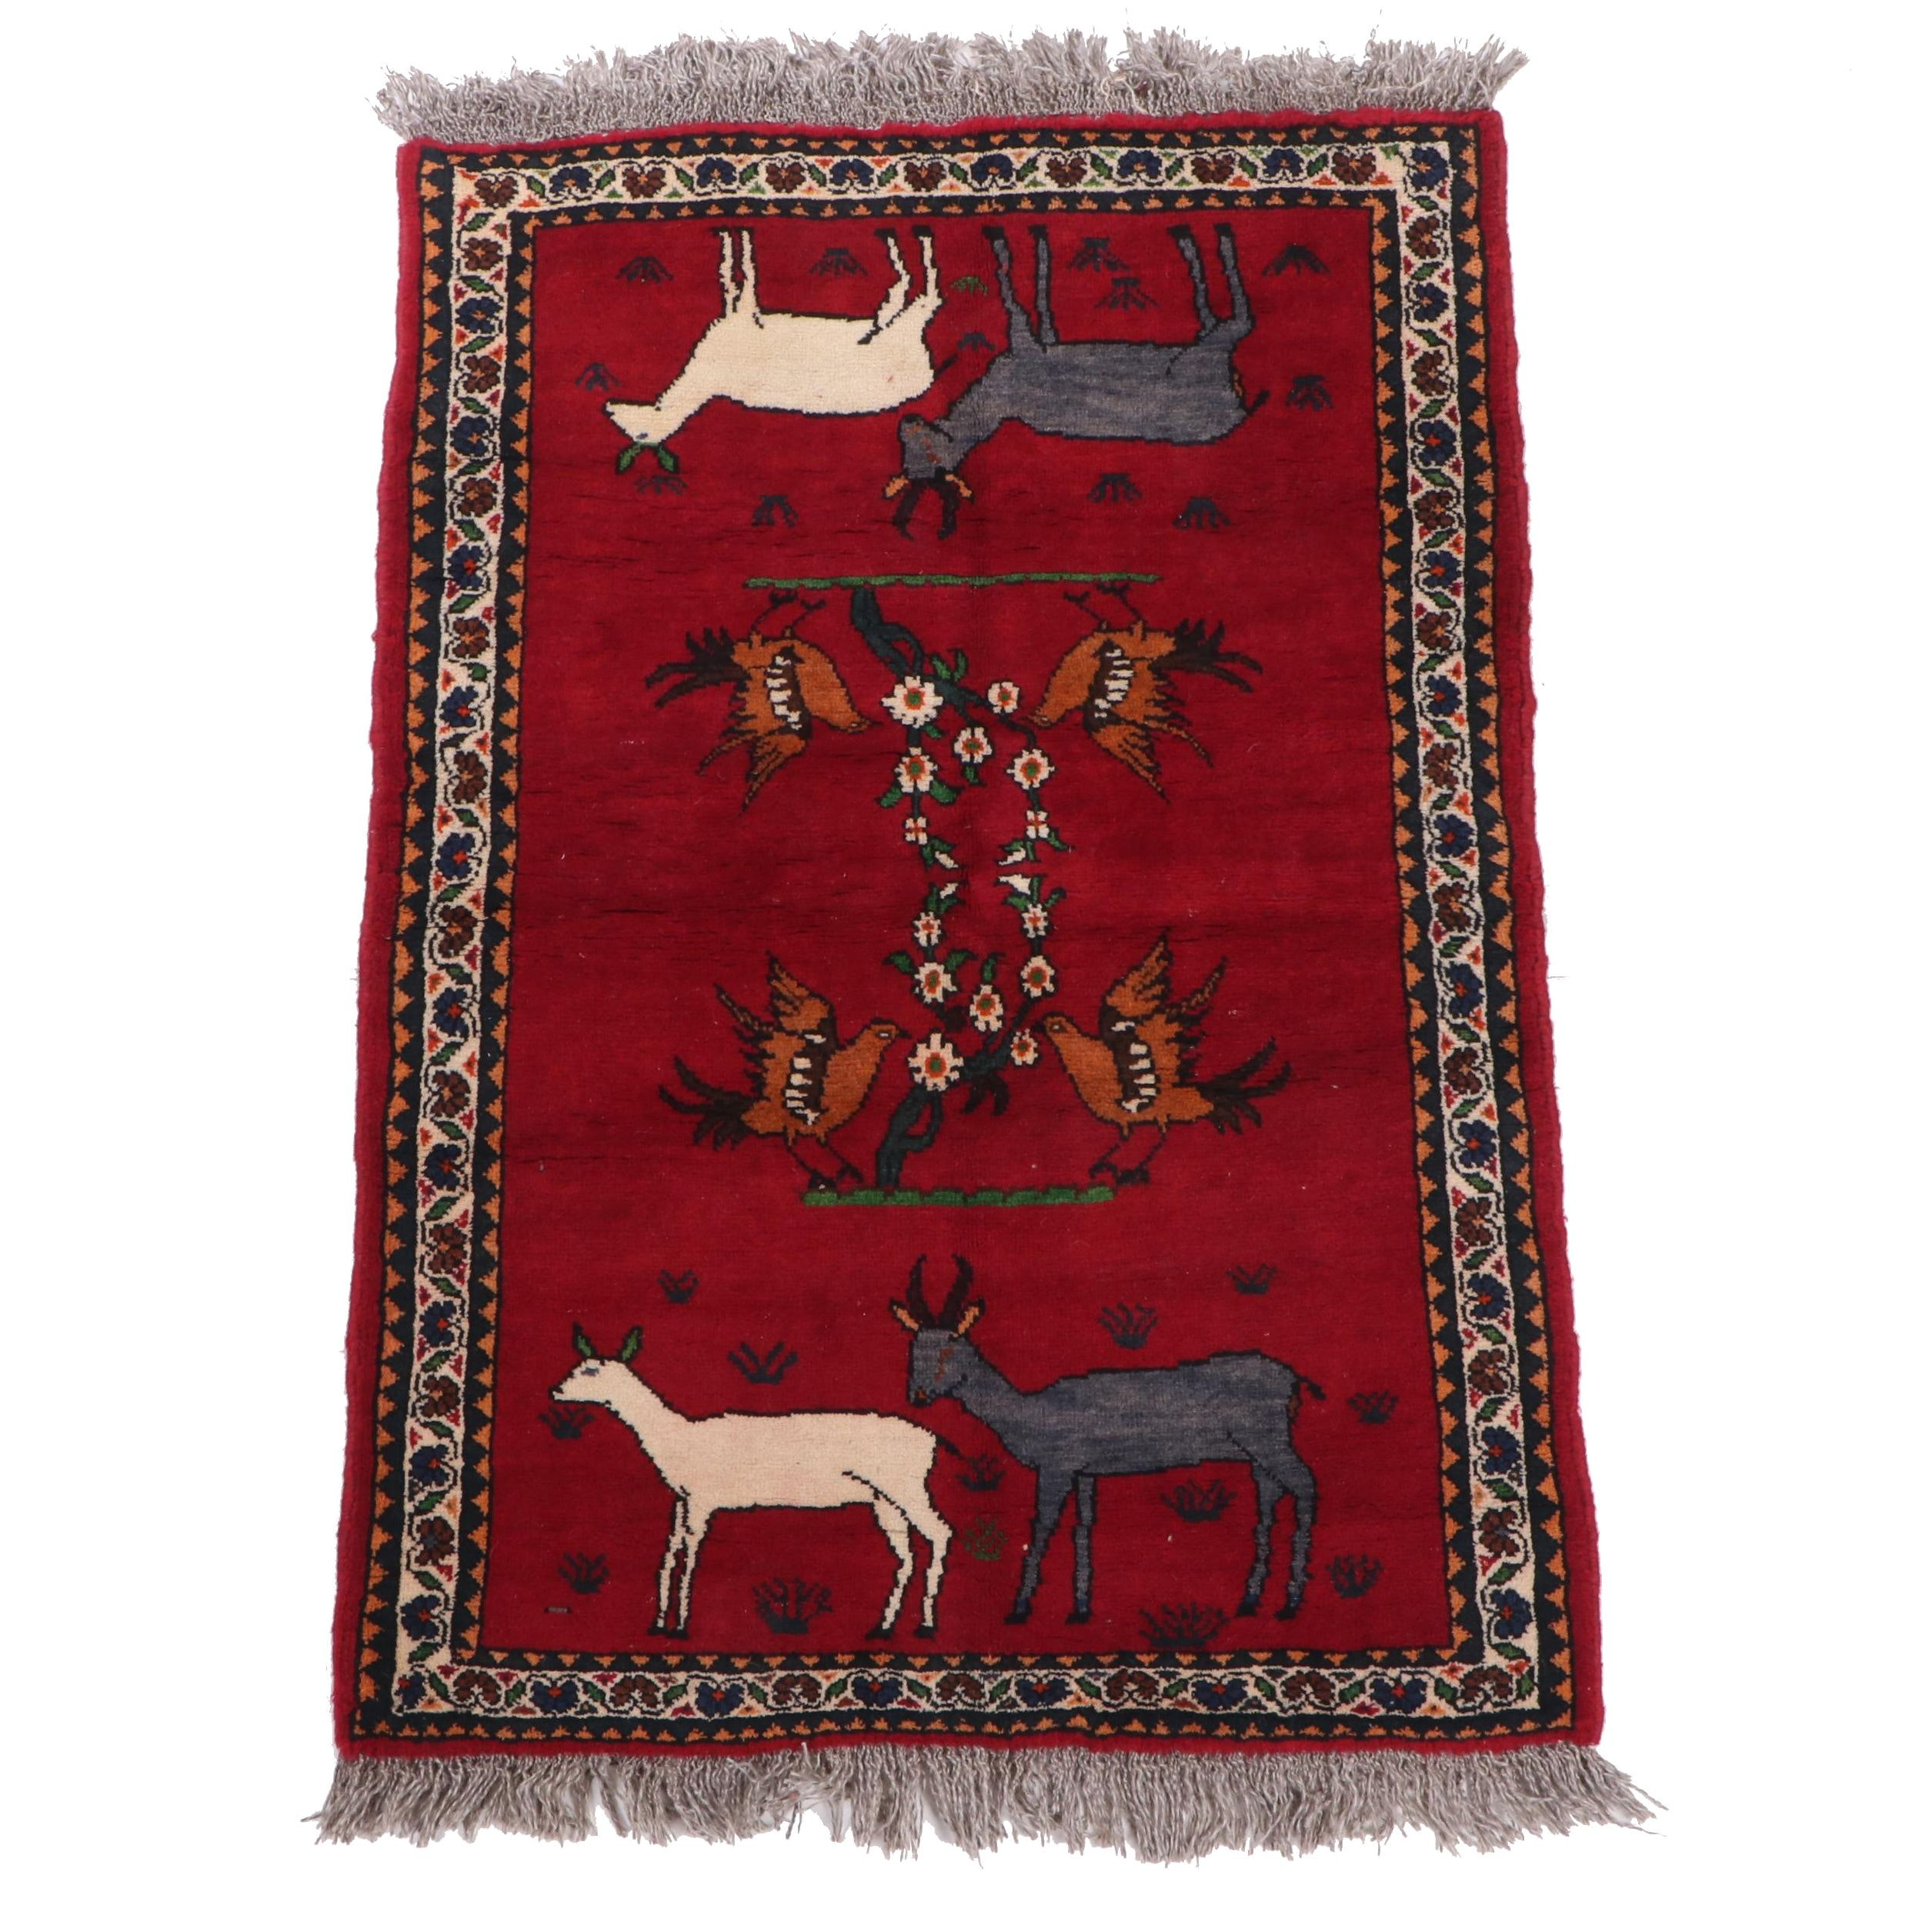 Hand-Knotted Persian Qashqai or Shiraz Wool Pictorial Accent Rug